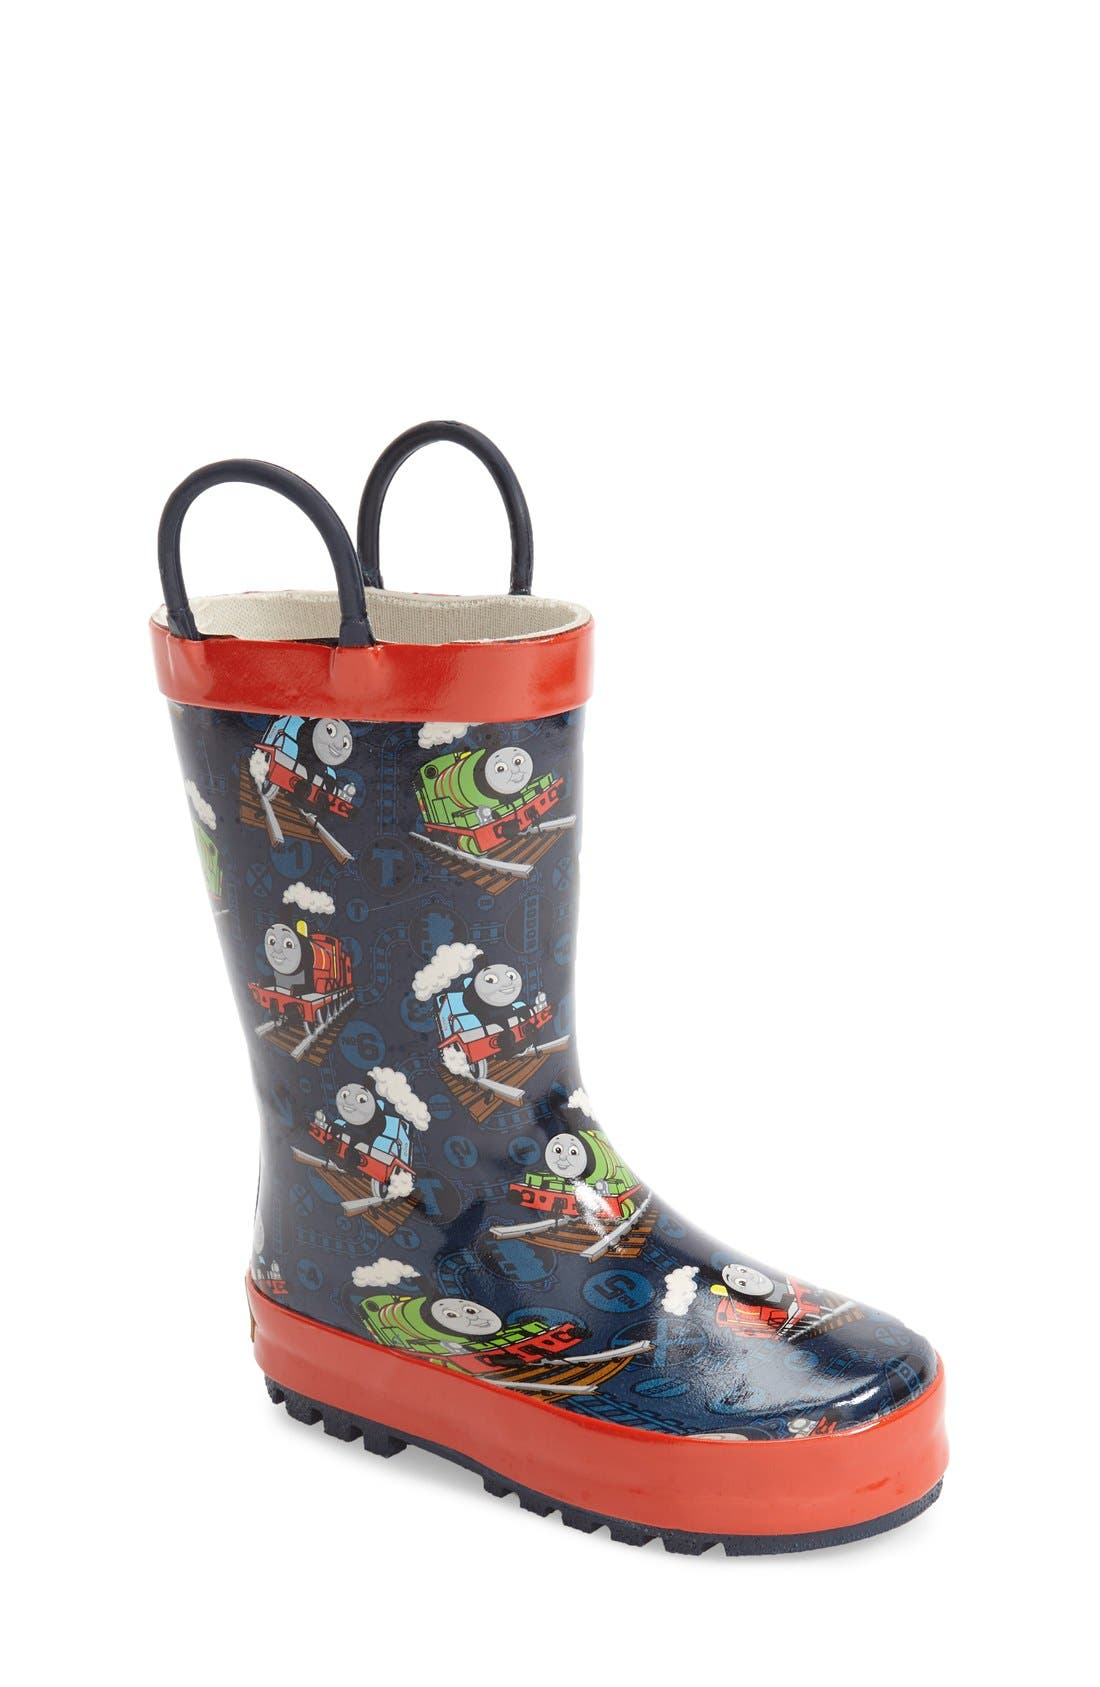 Thomas & Friends<sup>®</sup> Rain Boot,                             Main thumbnail 1, color,